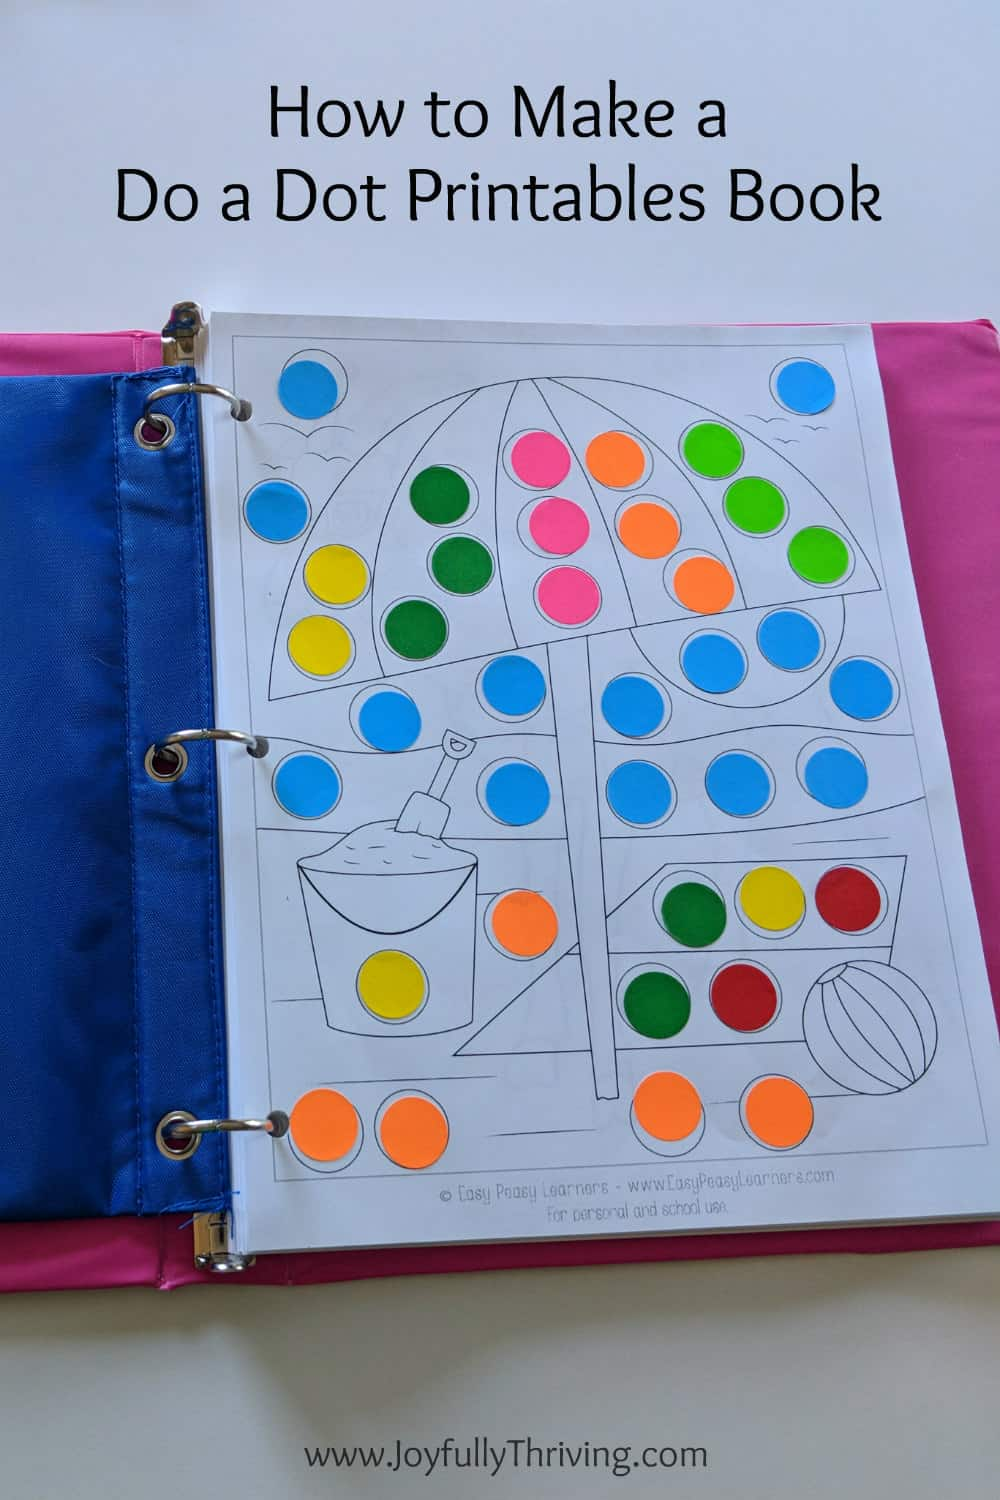 How to Make a Do a Dot Printables Book with Lots of Free Printables - It's a simple and fun idea for kids! Great for a traveling, too.